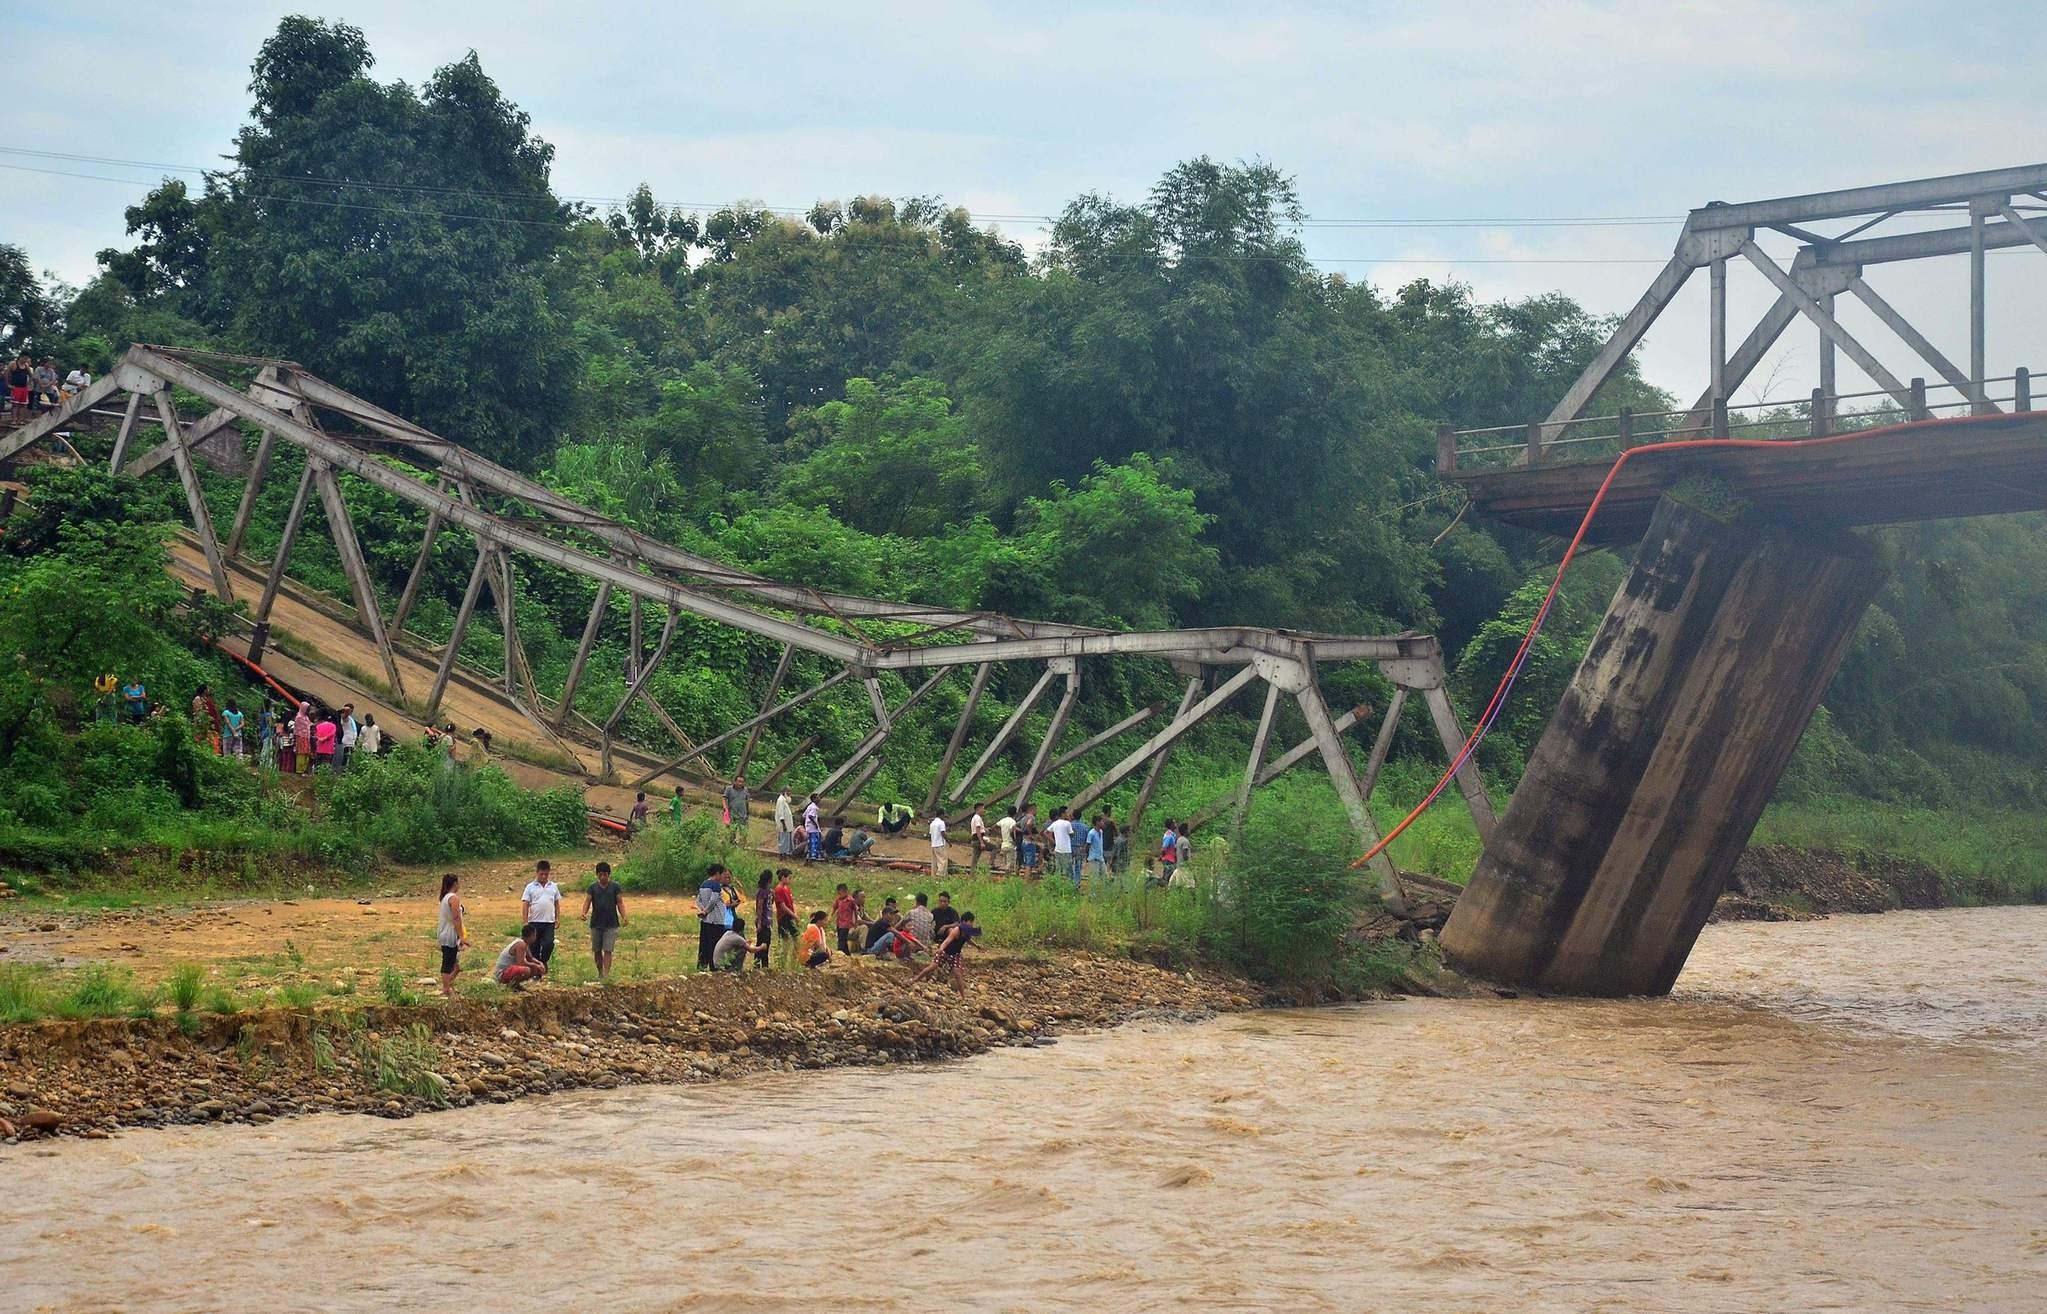 Indian bystanders look at a bridge that collapsed over the Chathe River in Dimapur, in India's northeastern state of Nagaland, on July 12, 2017. (AFP PHOTO)